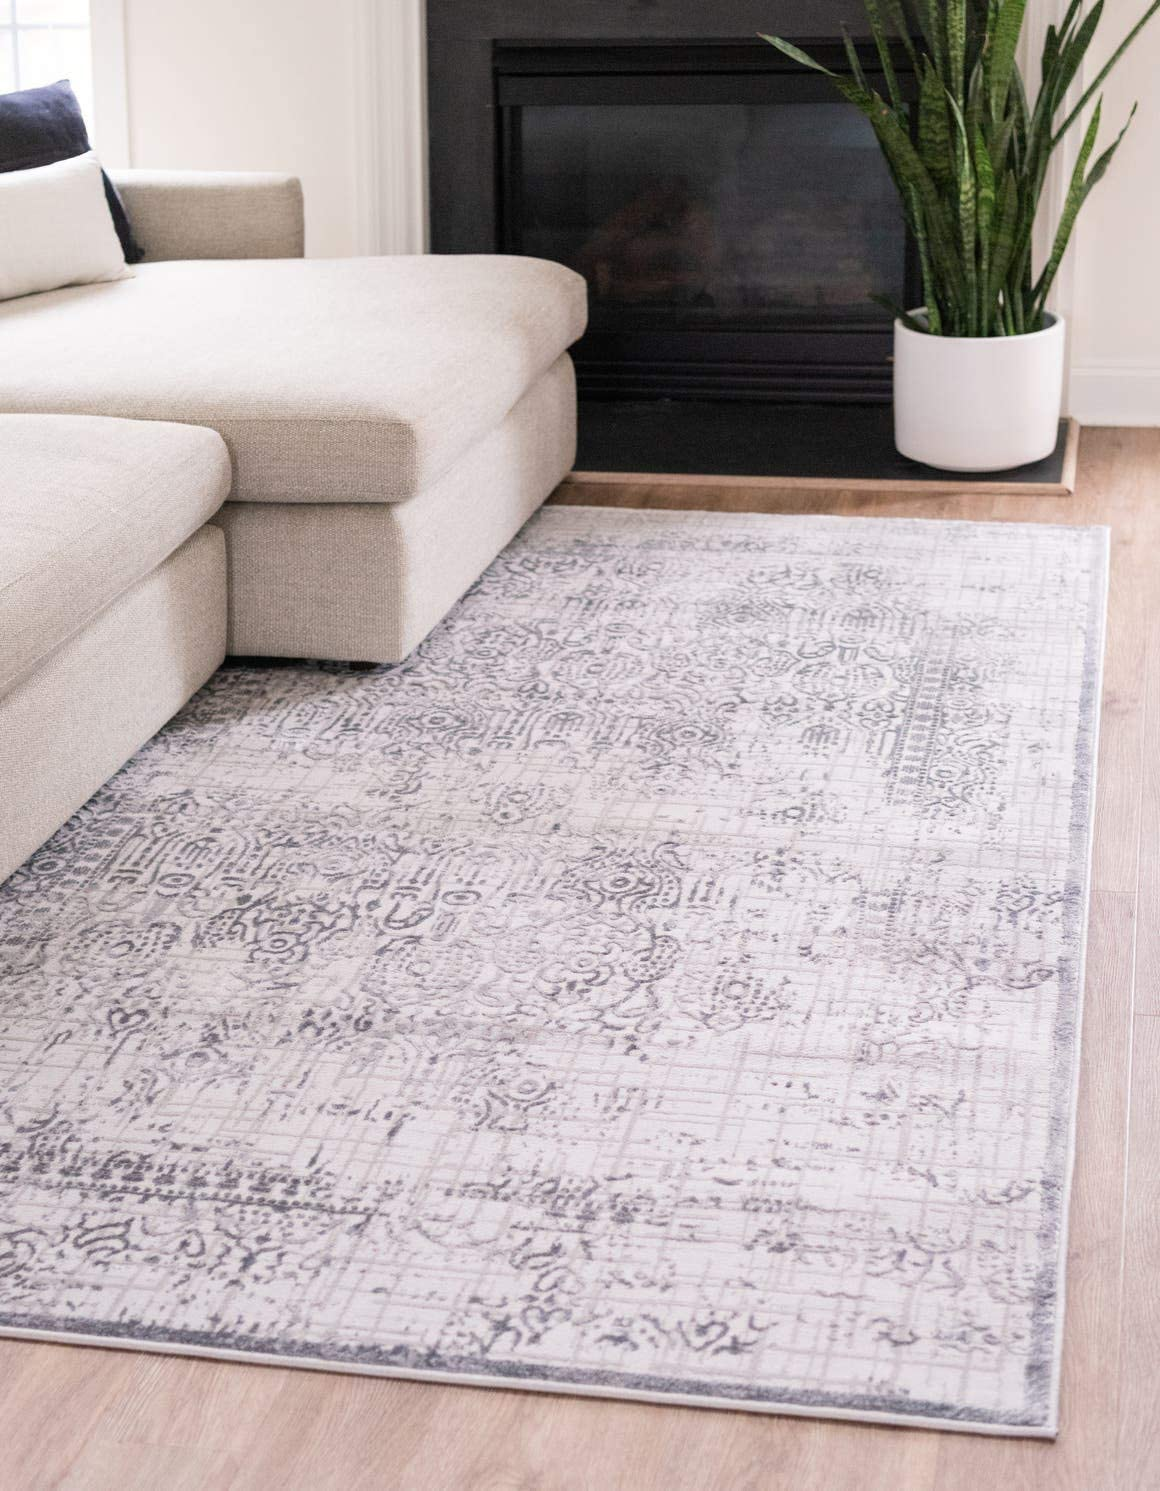 Unique Loom Aberdeen Collection Tone-on-Tone Traditional Textured Vintage Gray Area Rug 8 0 x 10 0